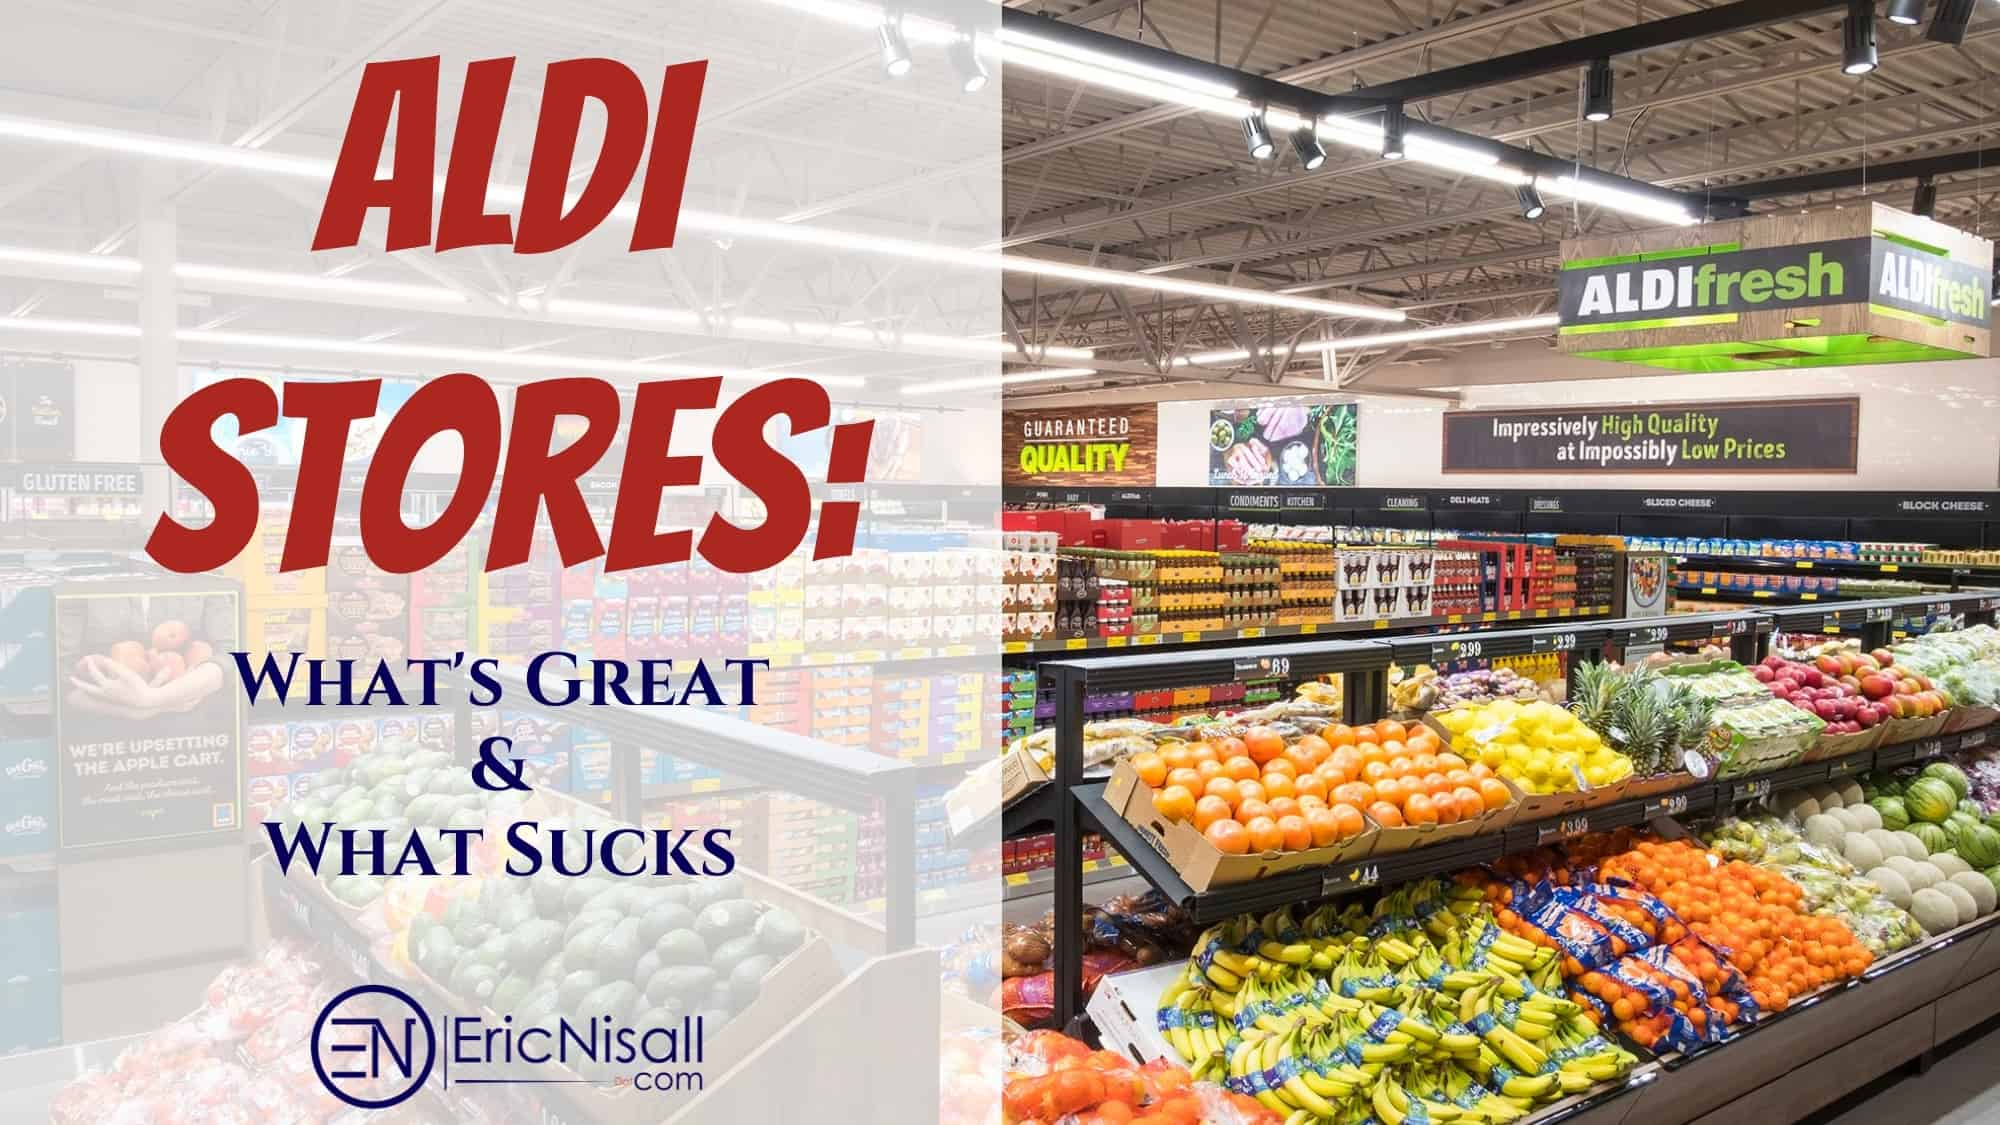 The fresh produce section of Aldi stores showcasing tomatoes, avocados, and oranges